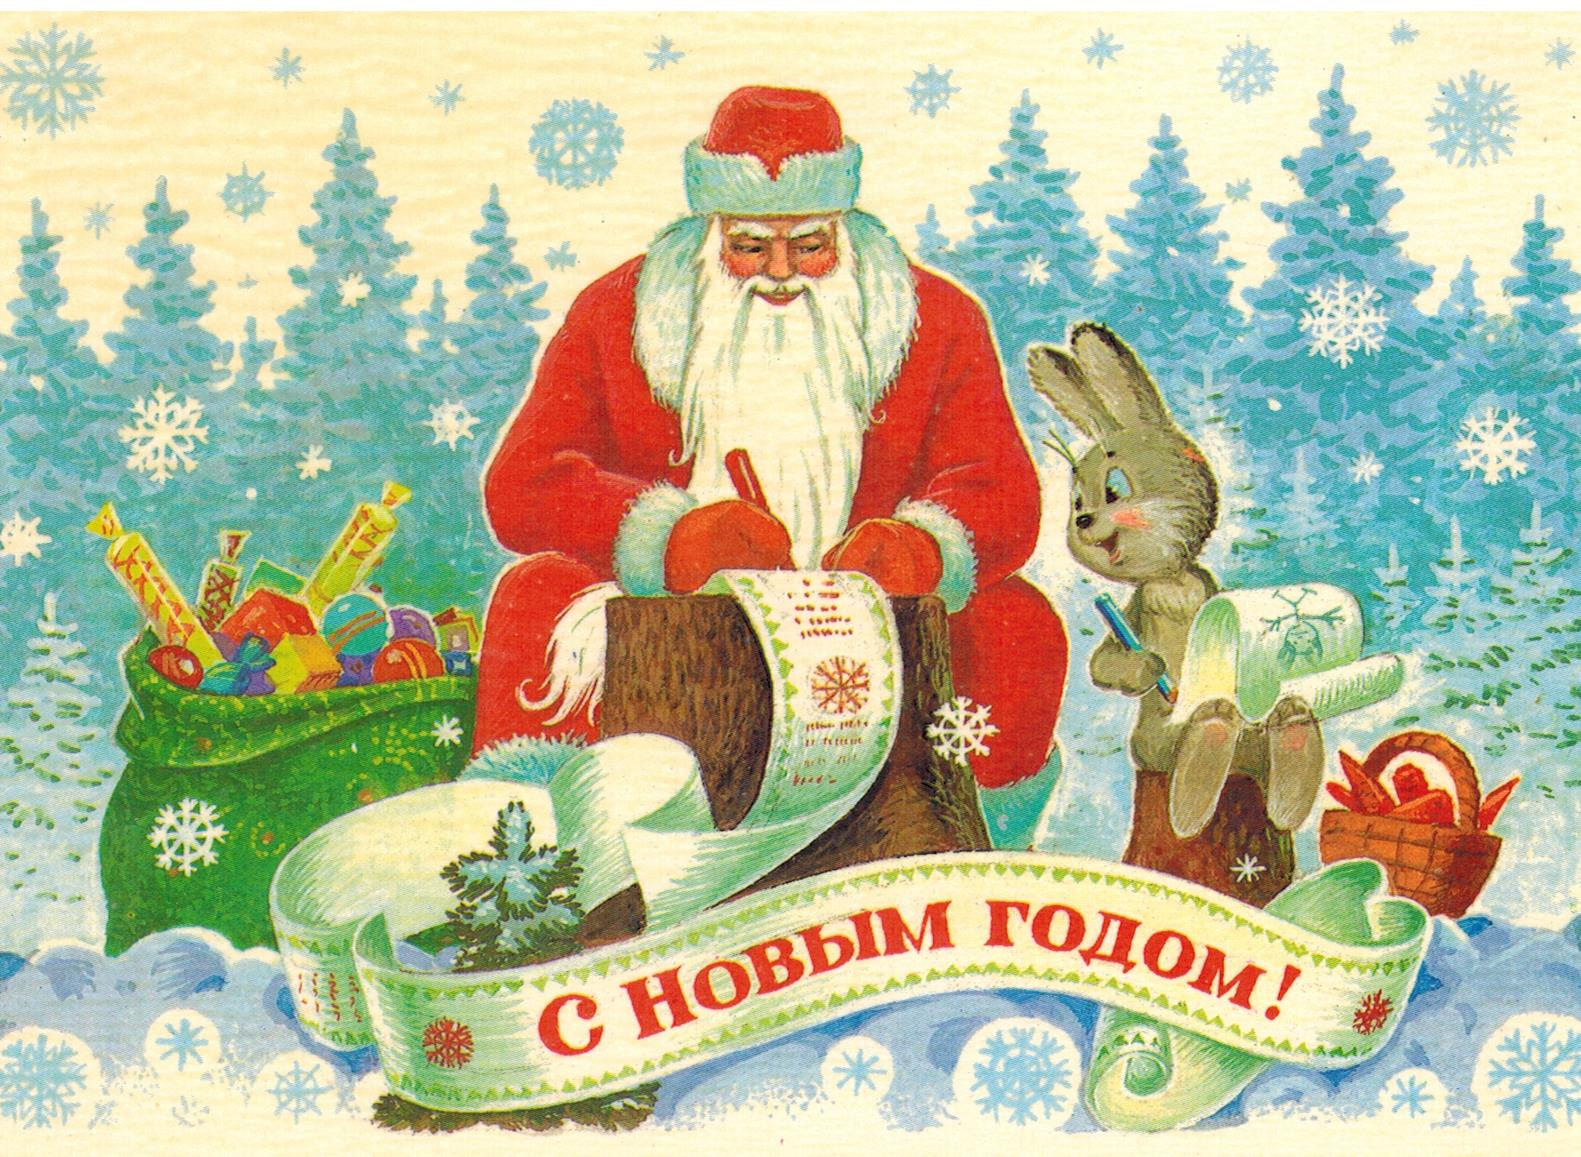 johannes gerk youngest brother of my grandfather would send us new years cards from the ussr these are scans of these cards sent to our family